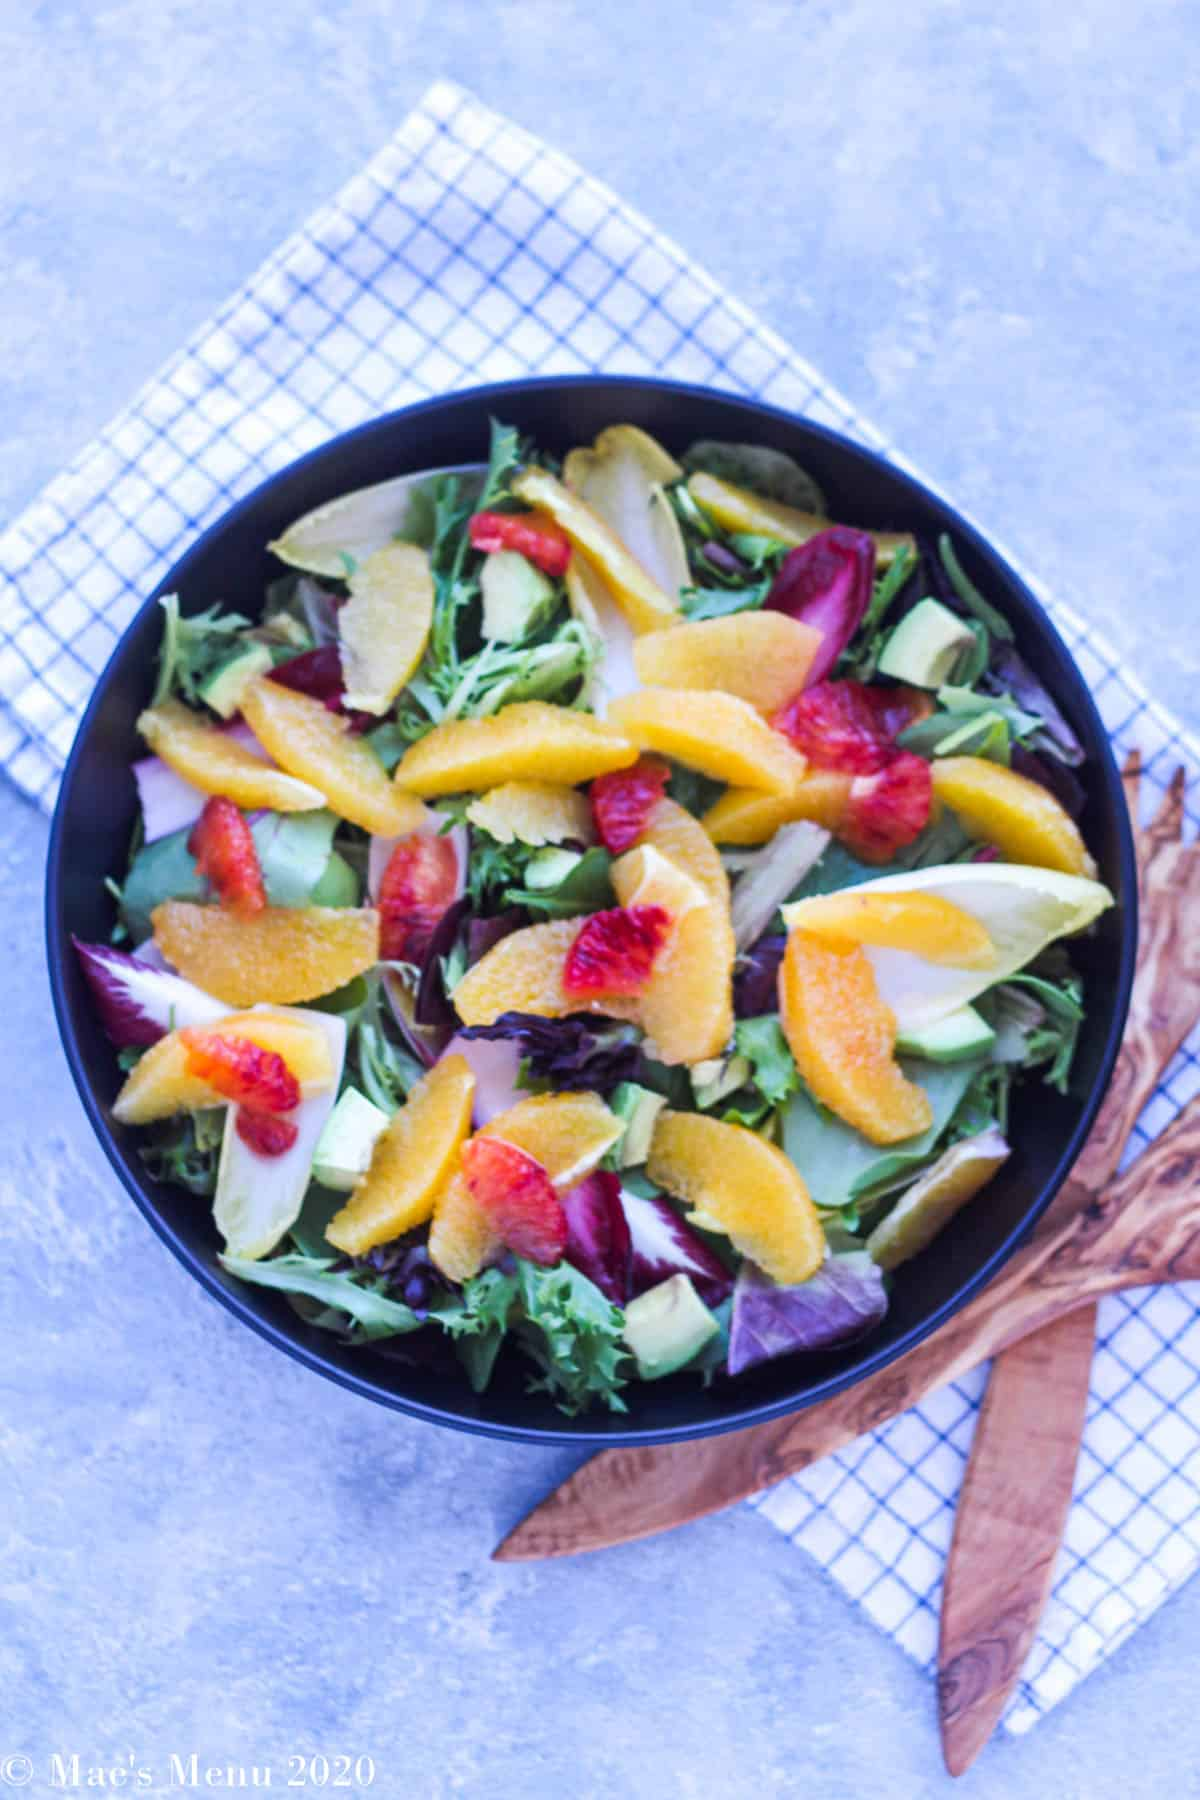 A compiled but undressed salad  in a black bowl